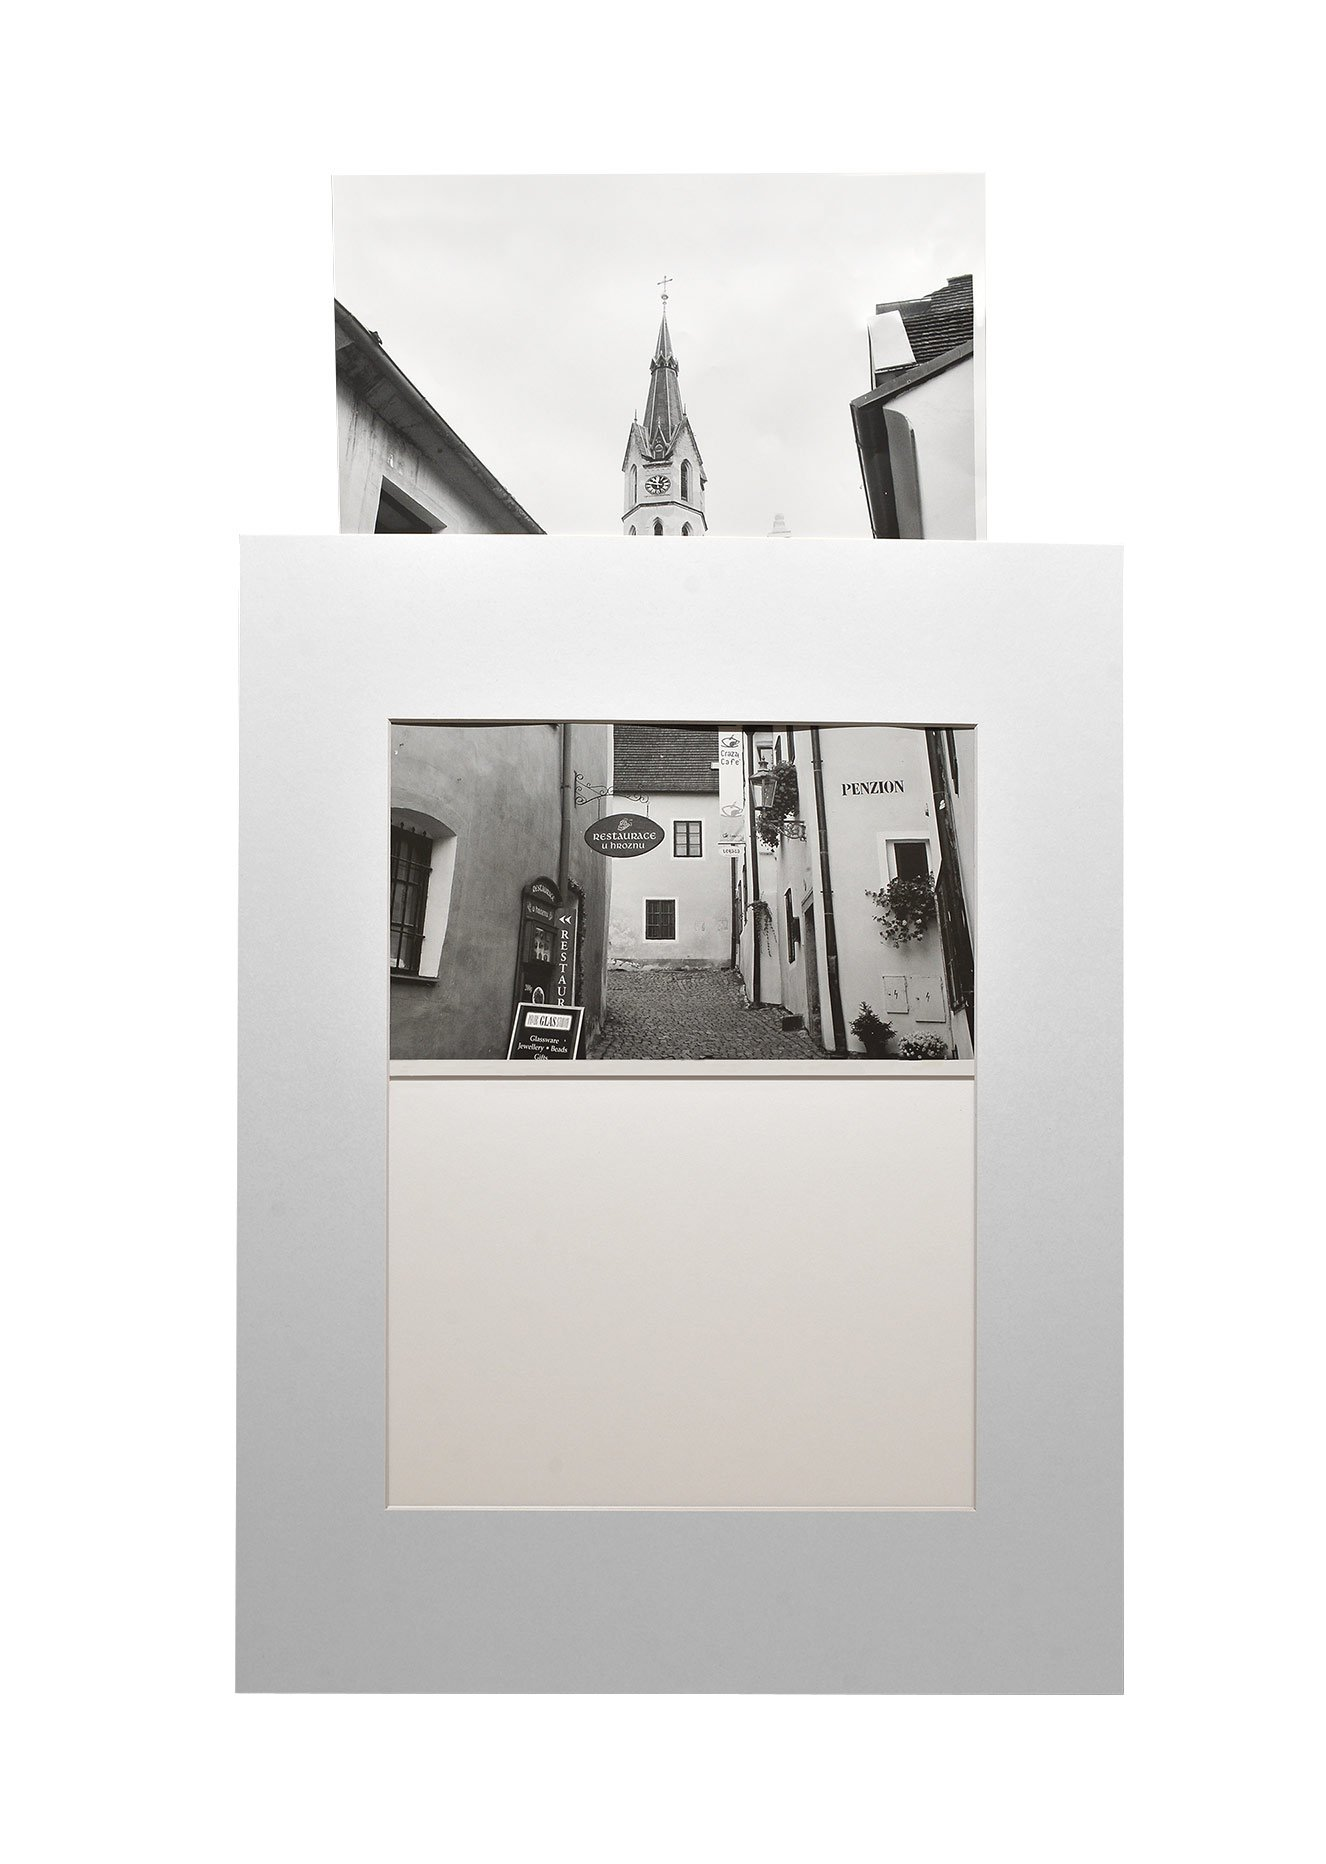 Golden State Art, Pack of 10 White 16x20 Slip-in Pre-Adhesive Photo Mat for 11x14 Picture with Backing Board pre-Assembled, Includes 10 Clear Bags